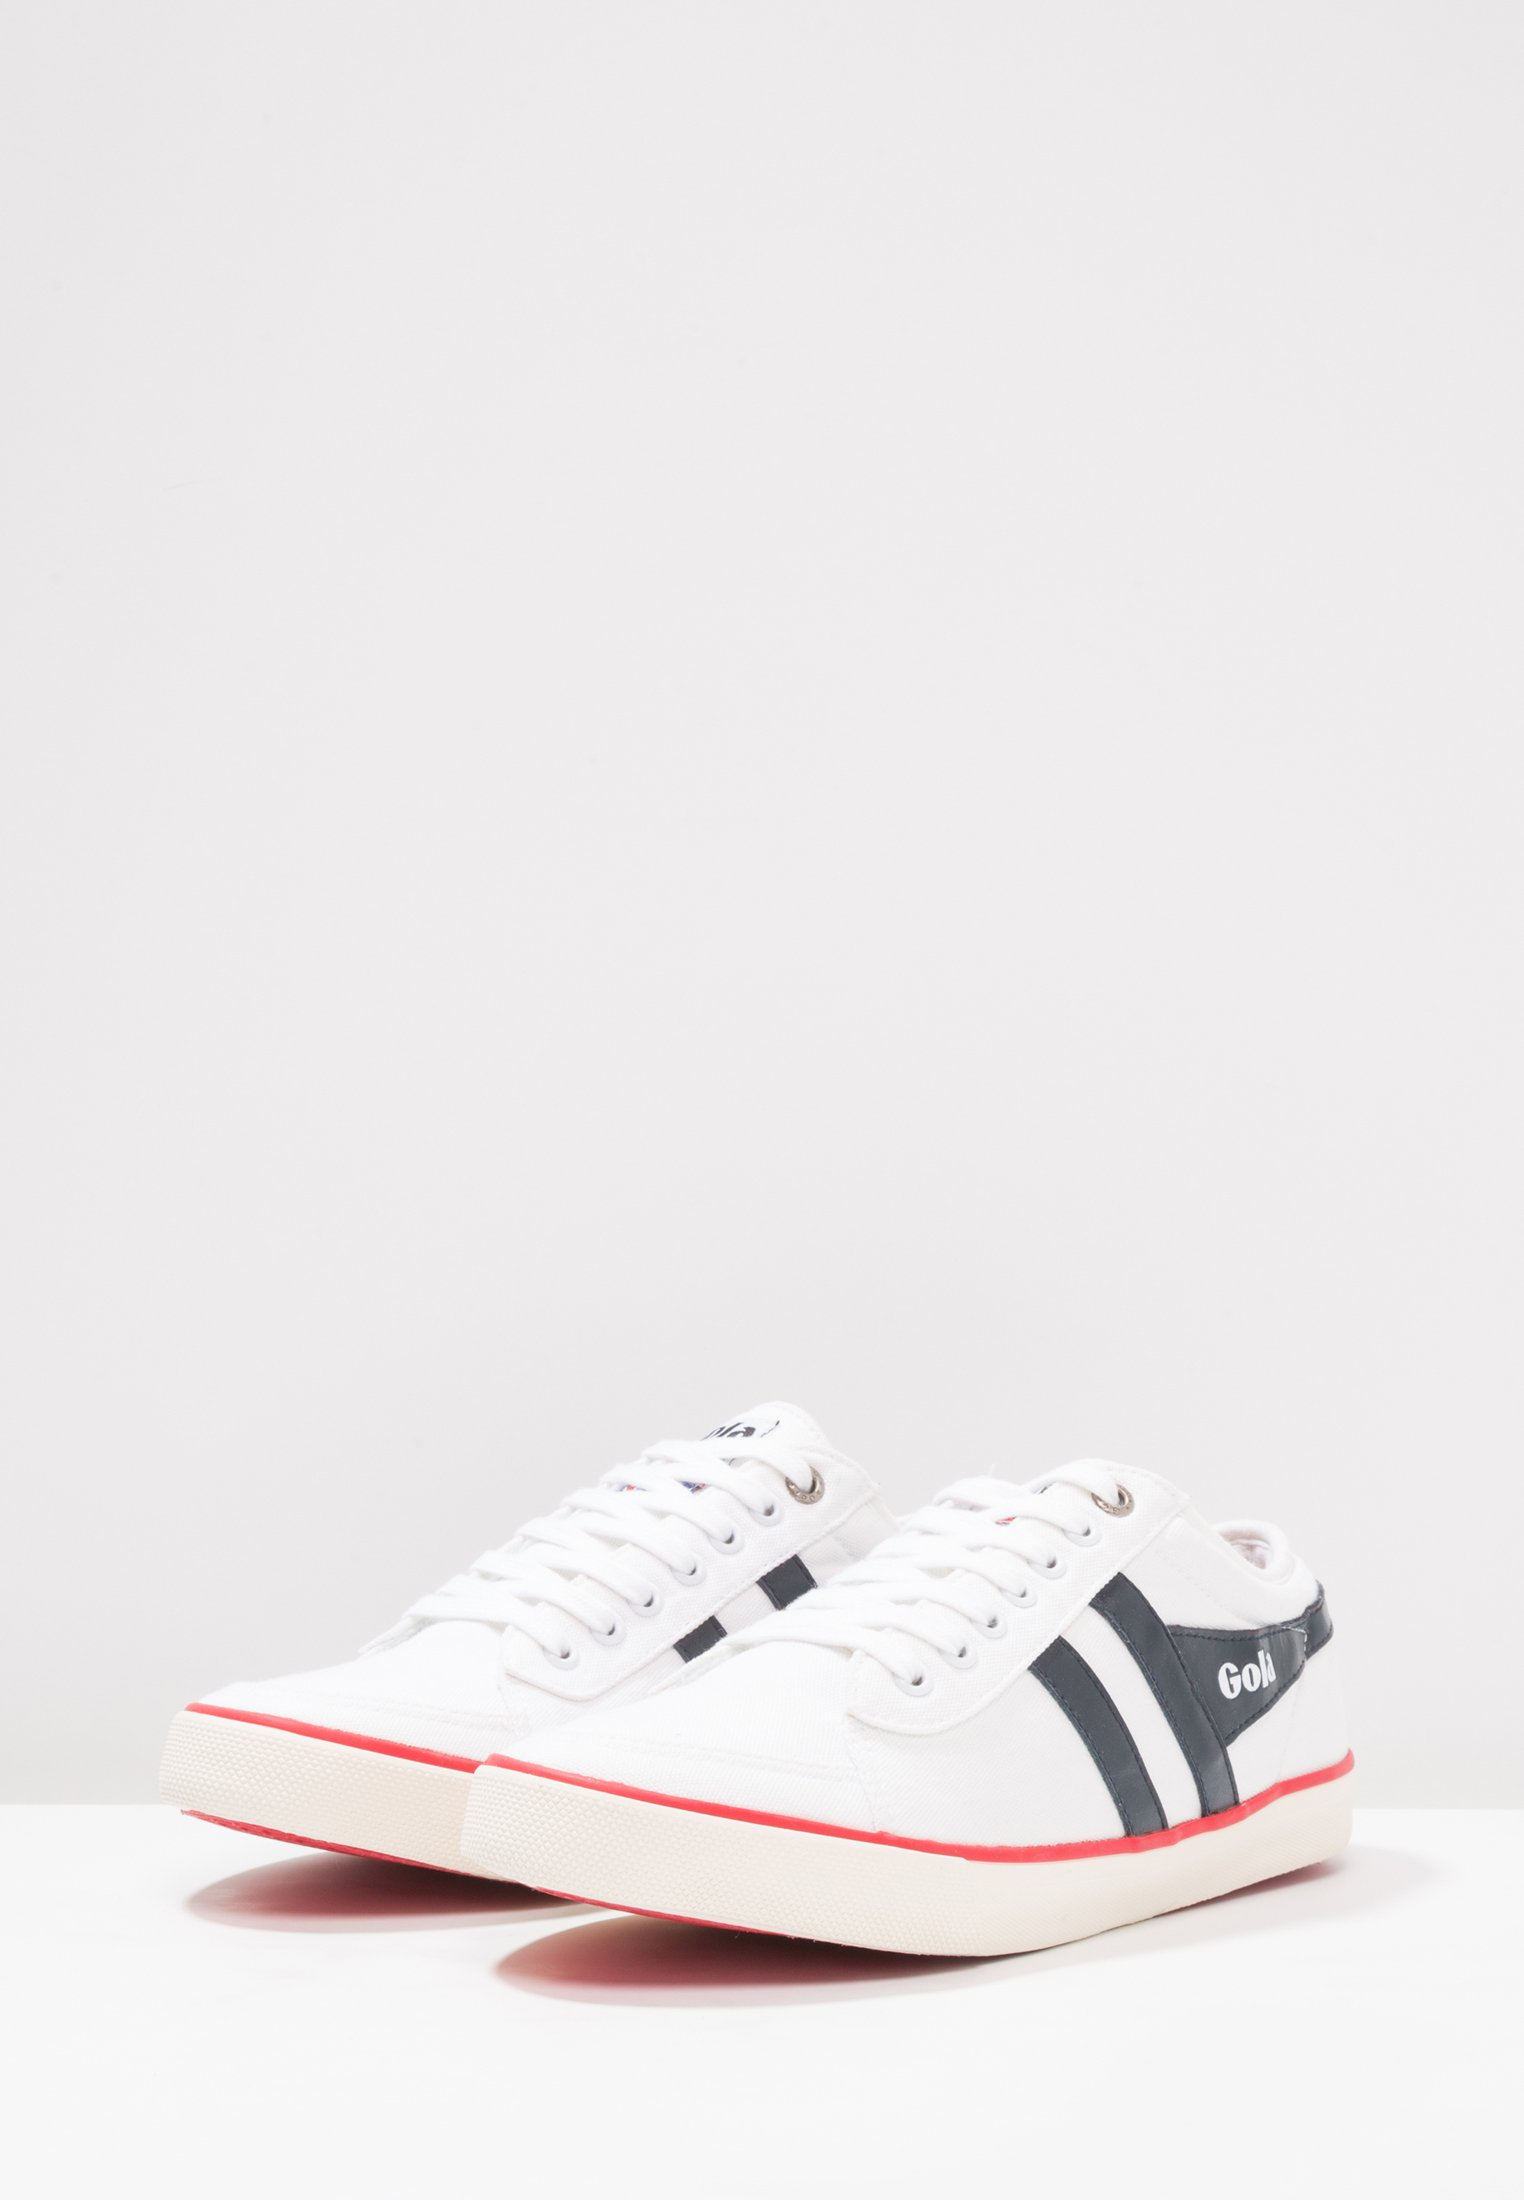 CometBaskets Basses Gola White red navy ywnmvN80O